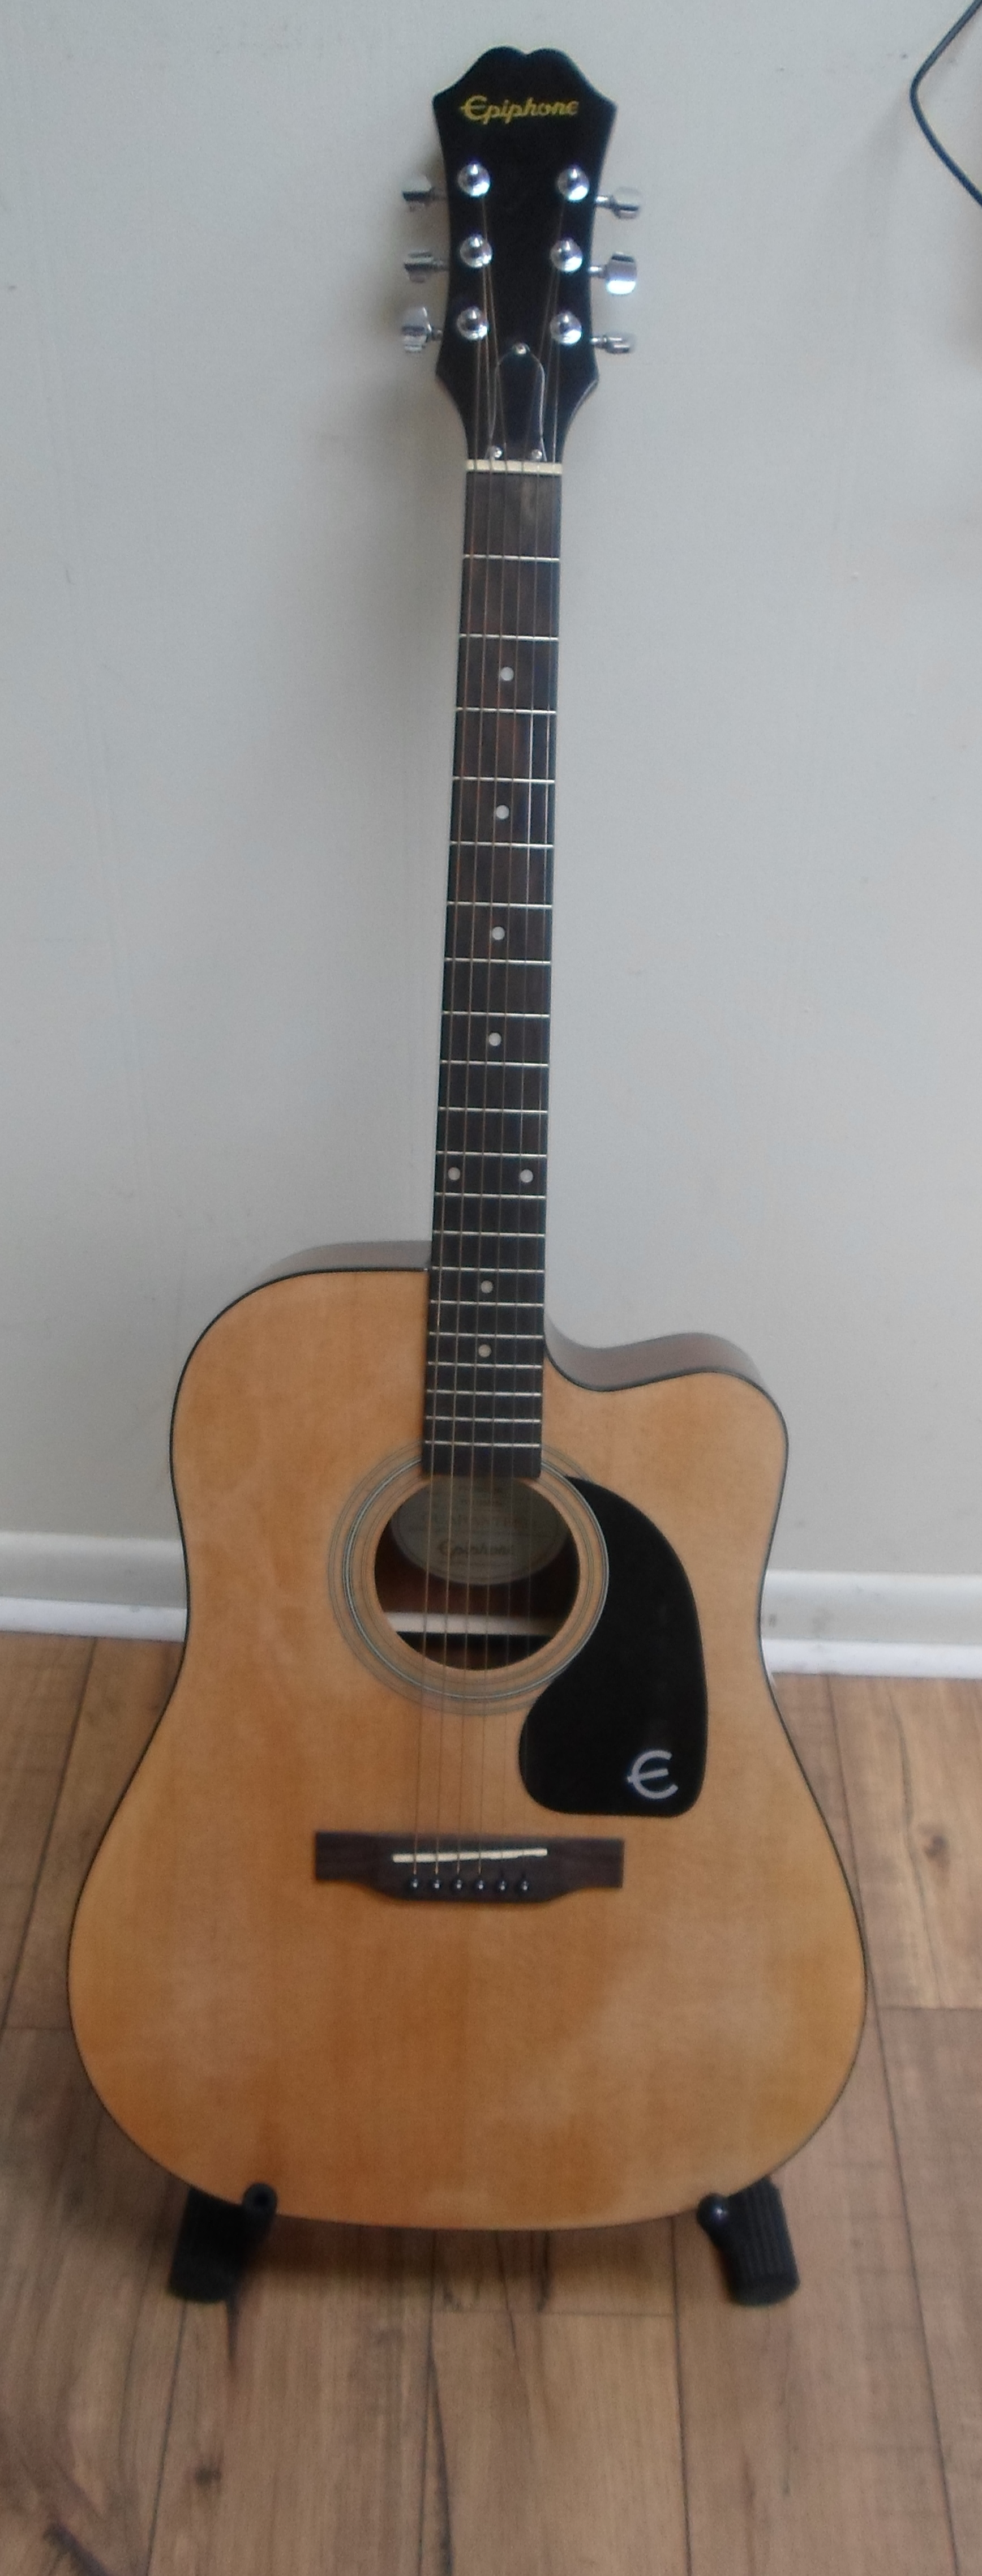 EPIPHONE FT-100 CE